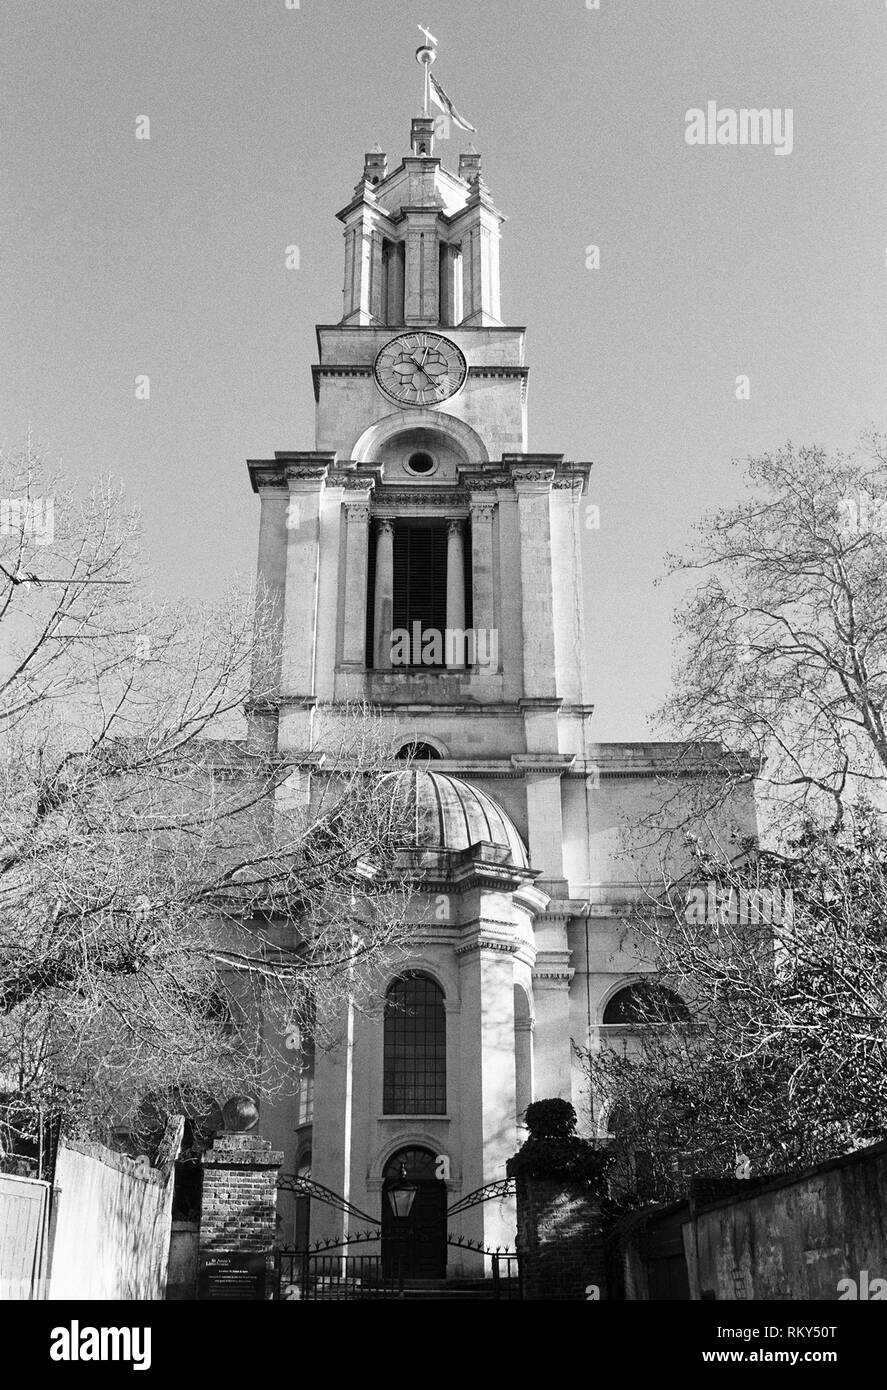 The tower of the Baroque church of St Anne, Limehouse, in London's East End, UK - Stock Image